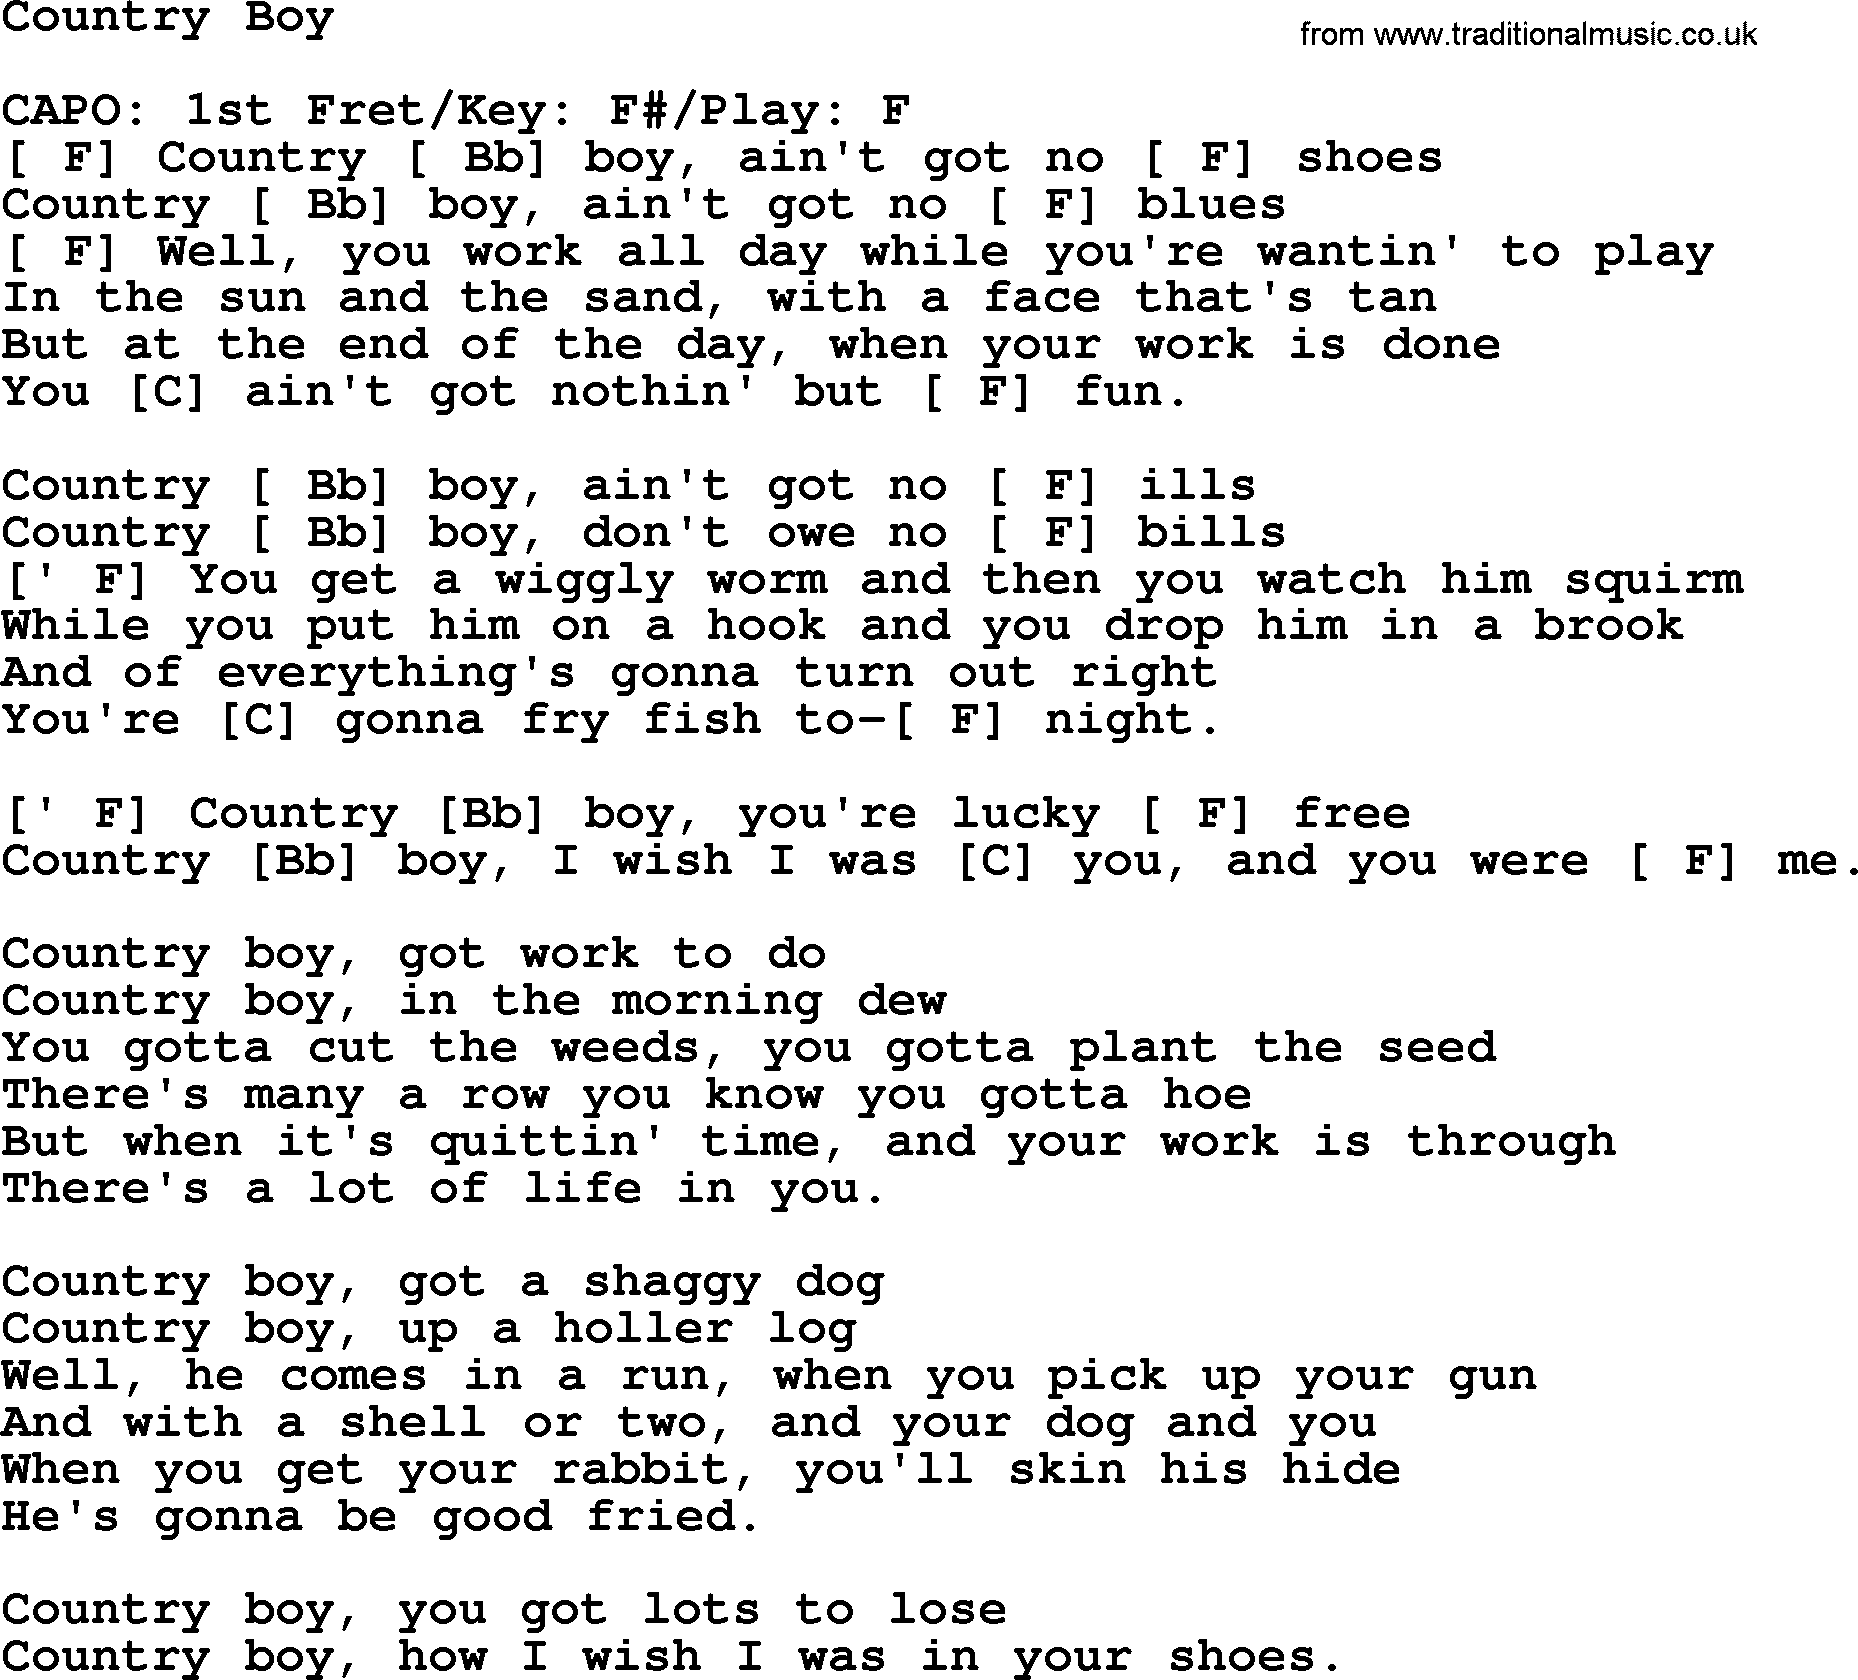 Johnny cash song country boy lyrics and chords johnny cash song country boy lyrics and chords hexwebz Images